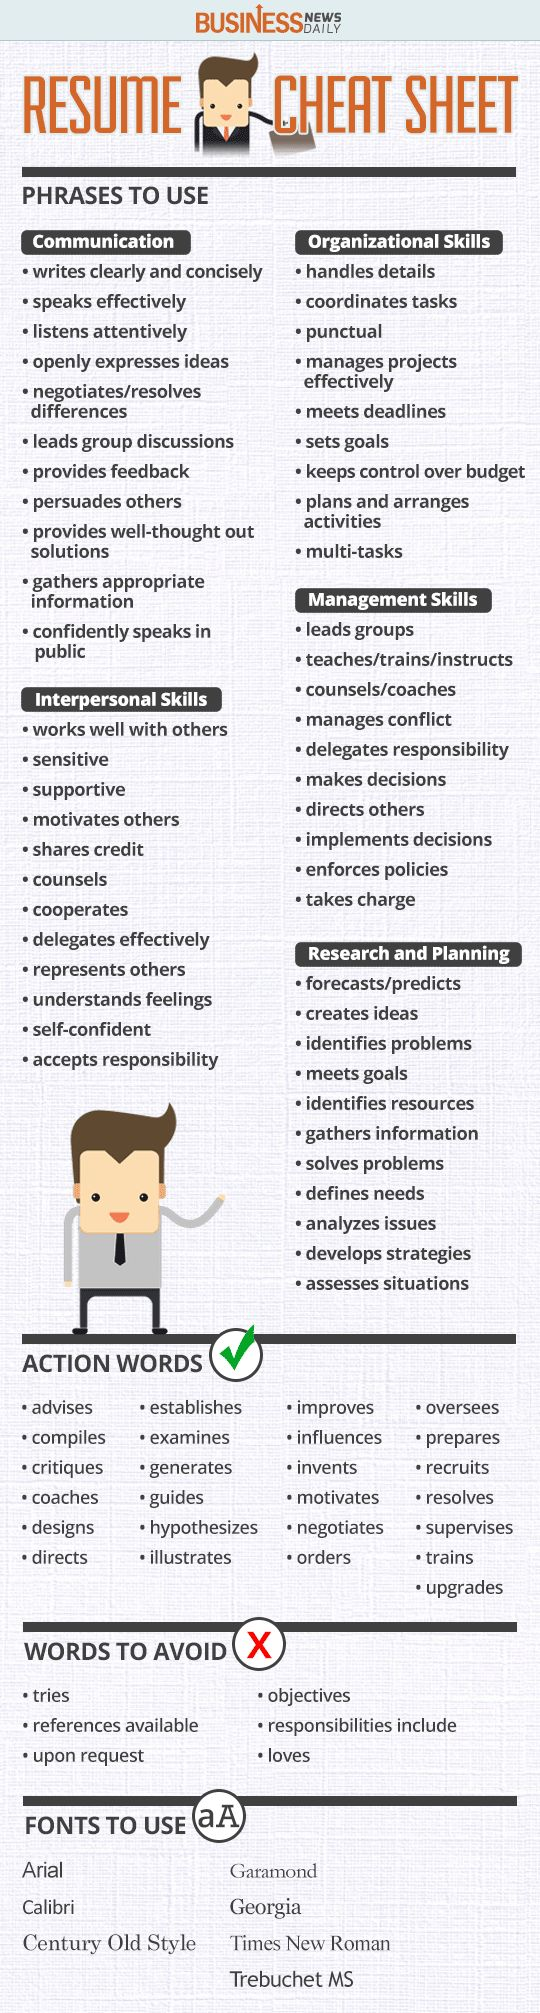 Opposenewapstandardsus  Pleasing  Ideas About Resume On Pinterest  Cv Format Resume  With Lovable Resume Cheat Sheet Infographic Andrews Almost Done With A Complete Unit On Employment Which With Extraordinary Create Resume Templates Also How Can I Do A Resume In Addition Most Popular Resume Format And Summary Examples For Resumes As Well As Operations Supervisor Resume Additionally List Of Skills On Resume From Pinterestcom With Opposenewapstandardsus  Lovable  Ideas About Resume On Pinterest  Cv Format Resume  With Extraordinary Resume Cheat Sheet Infographic Andrews Almost Done With A Complete Unit On Employment Which And Pleasing Create Resume Templates Also How Can I Do A Resume In Addition Most Popular Resume Format From Pinterestcom